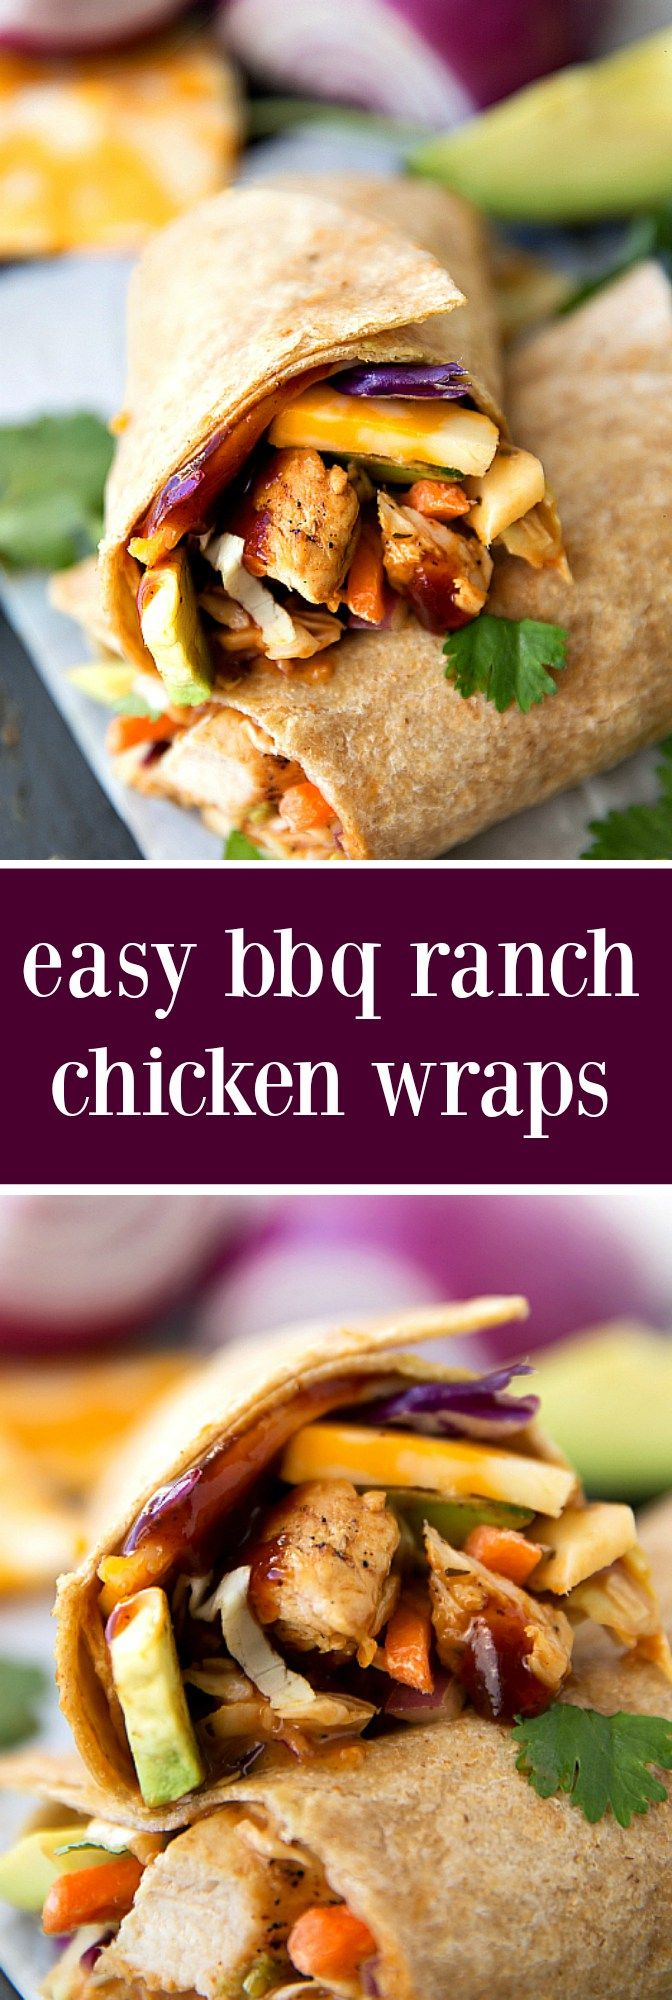 Quick and easy chipotle ranch BBQ Chicken Wraps filled with chicken, Colby jack cheese, avocado, chipotle ranch BBQ dressed coleslaw, red onions, and cilantro.